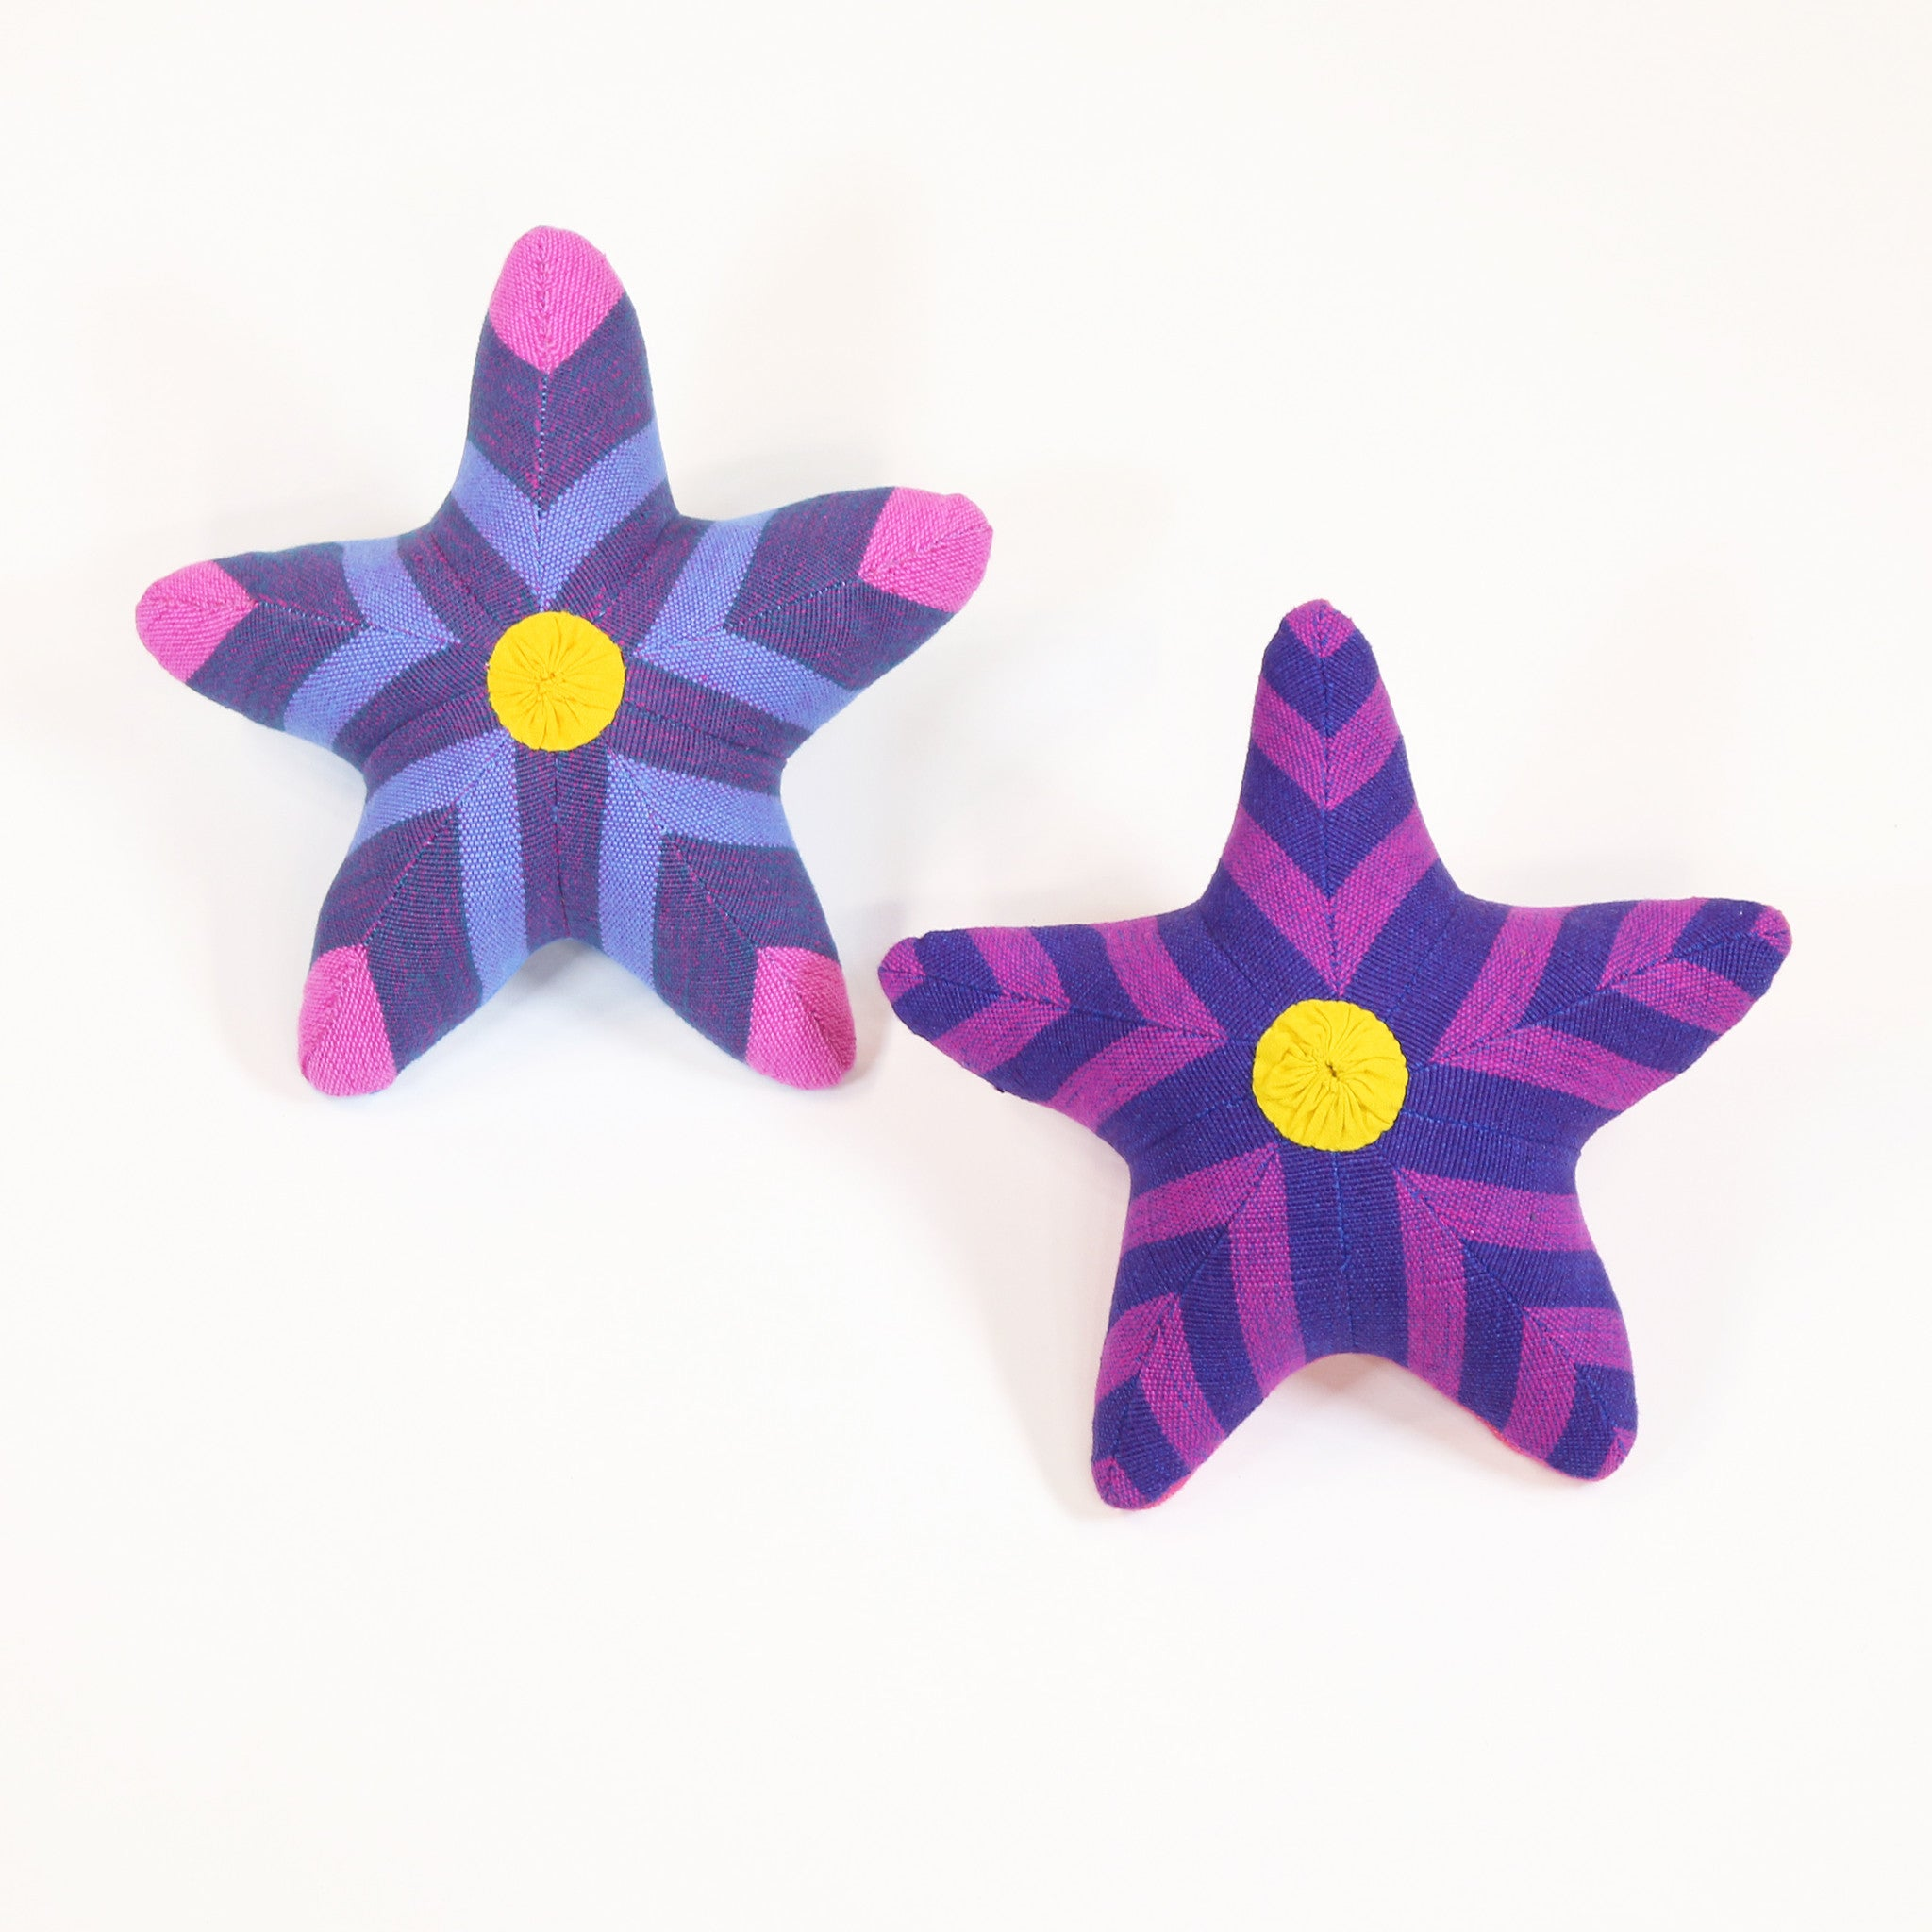 Sybil, the Starfish – all patterns (front view)